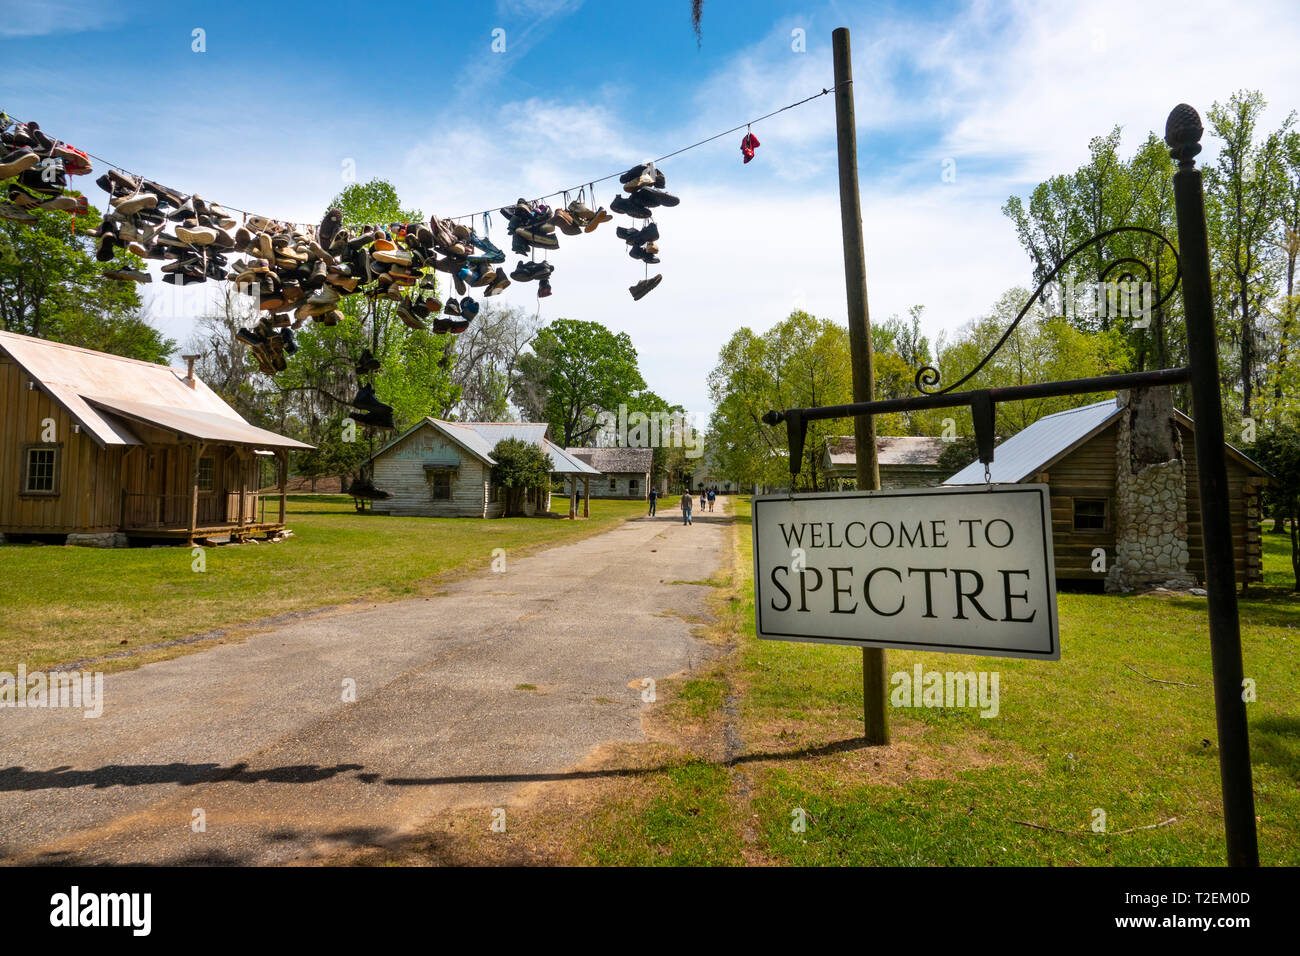 usa-montgomery-alabama-gun-chute-island-the-town-of-spectre-movie-set-for-the-tim-burton-film-called-big-fish-T2EM0D.jpg